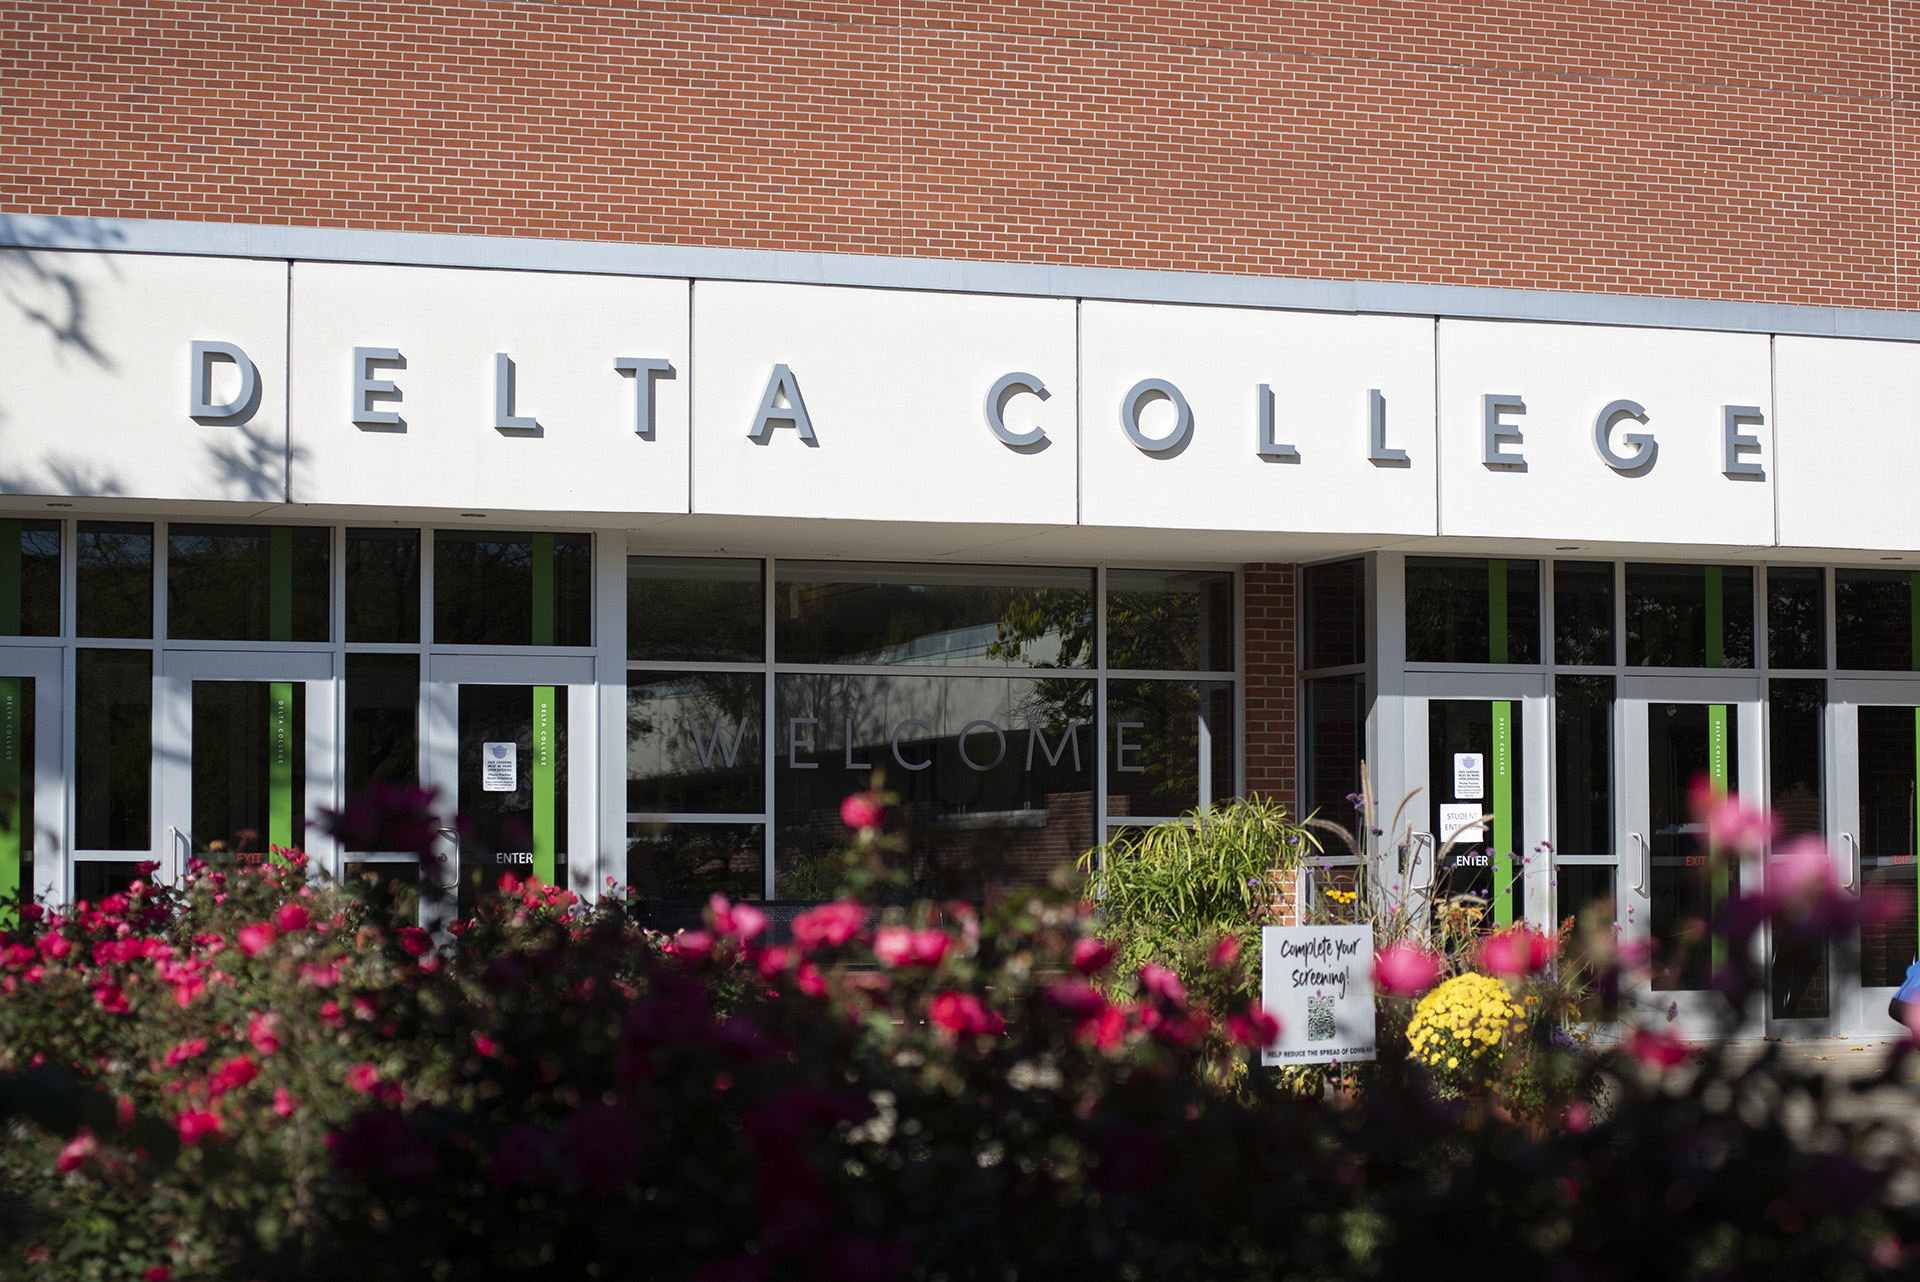 Welcome to Delta College!